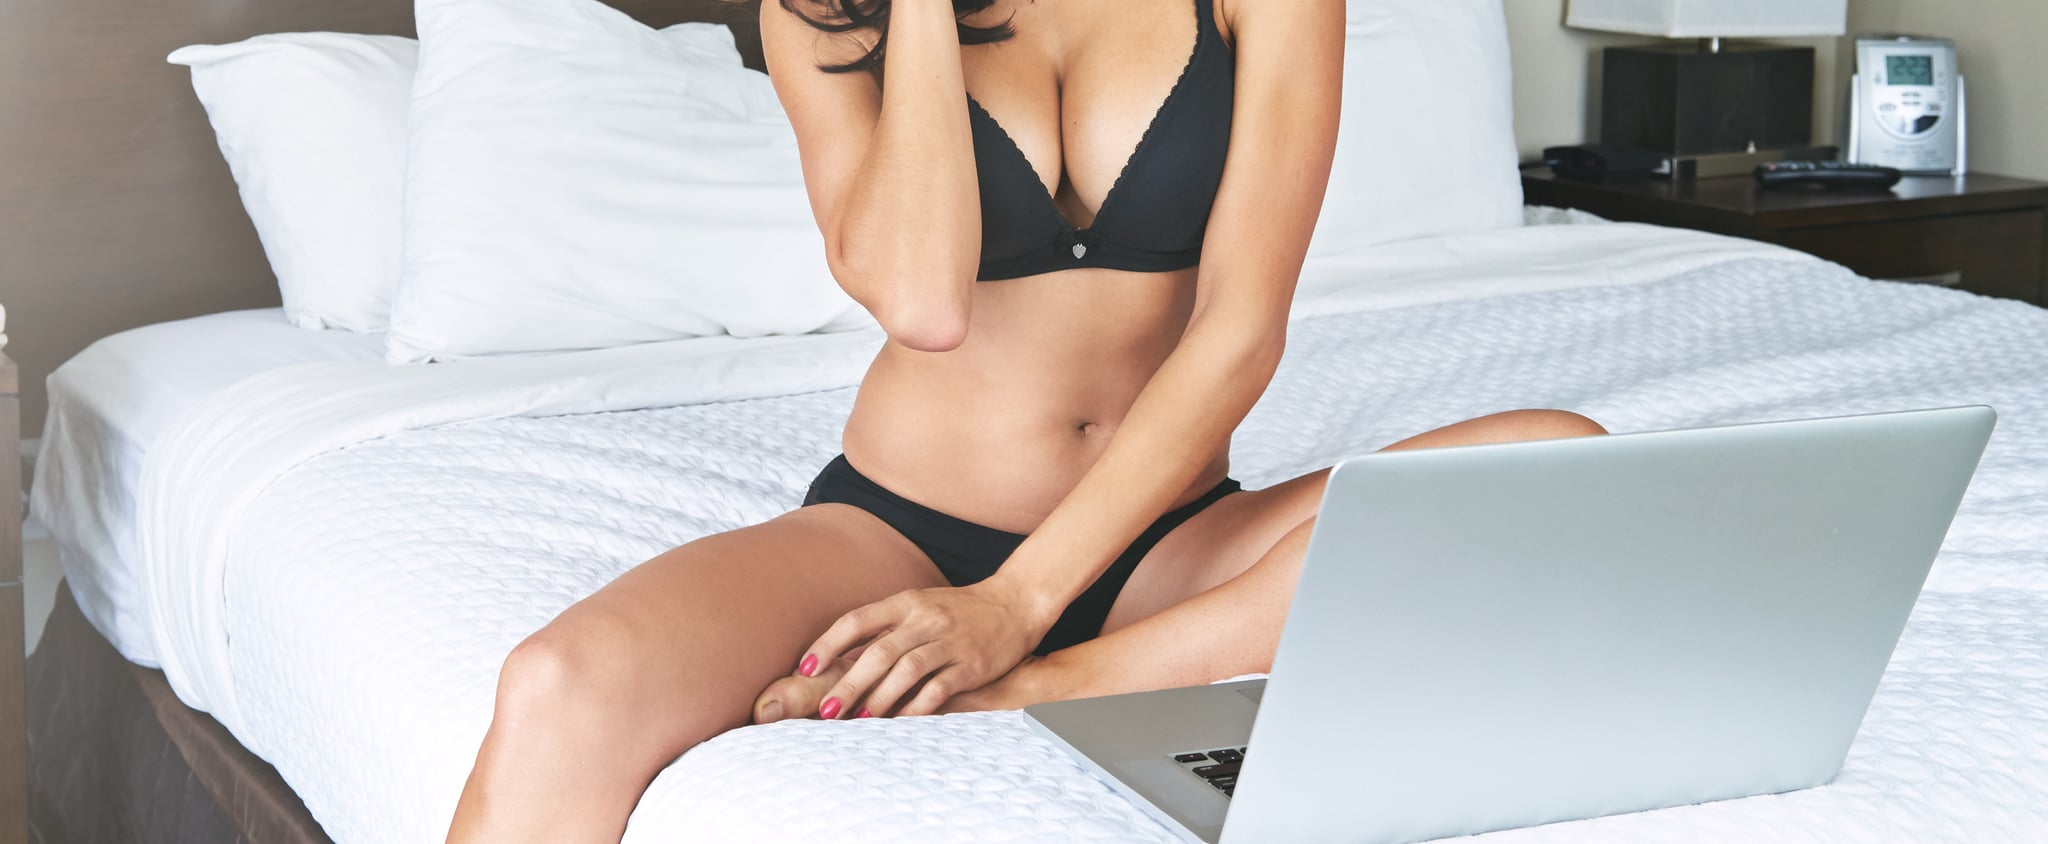 Best Porn Websites and Apps For Women